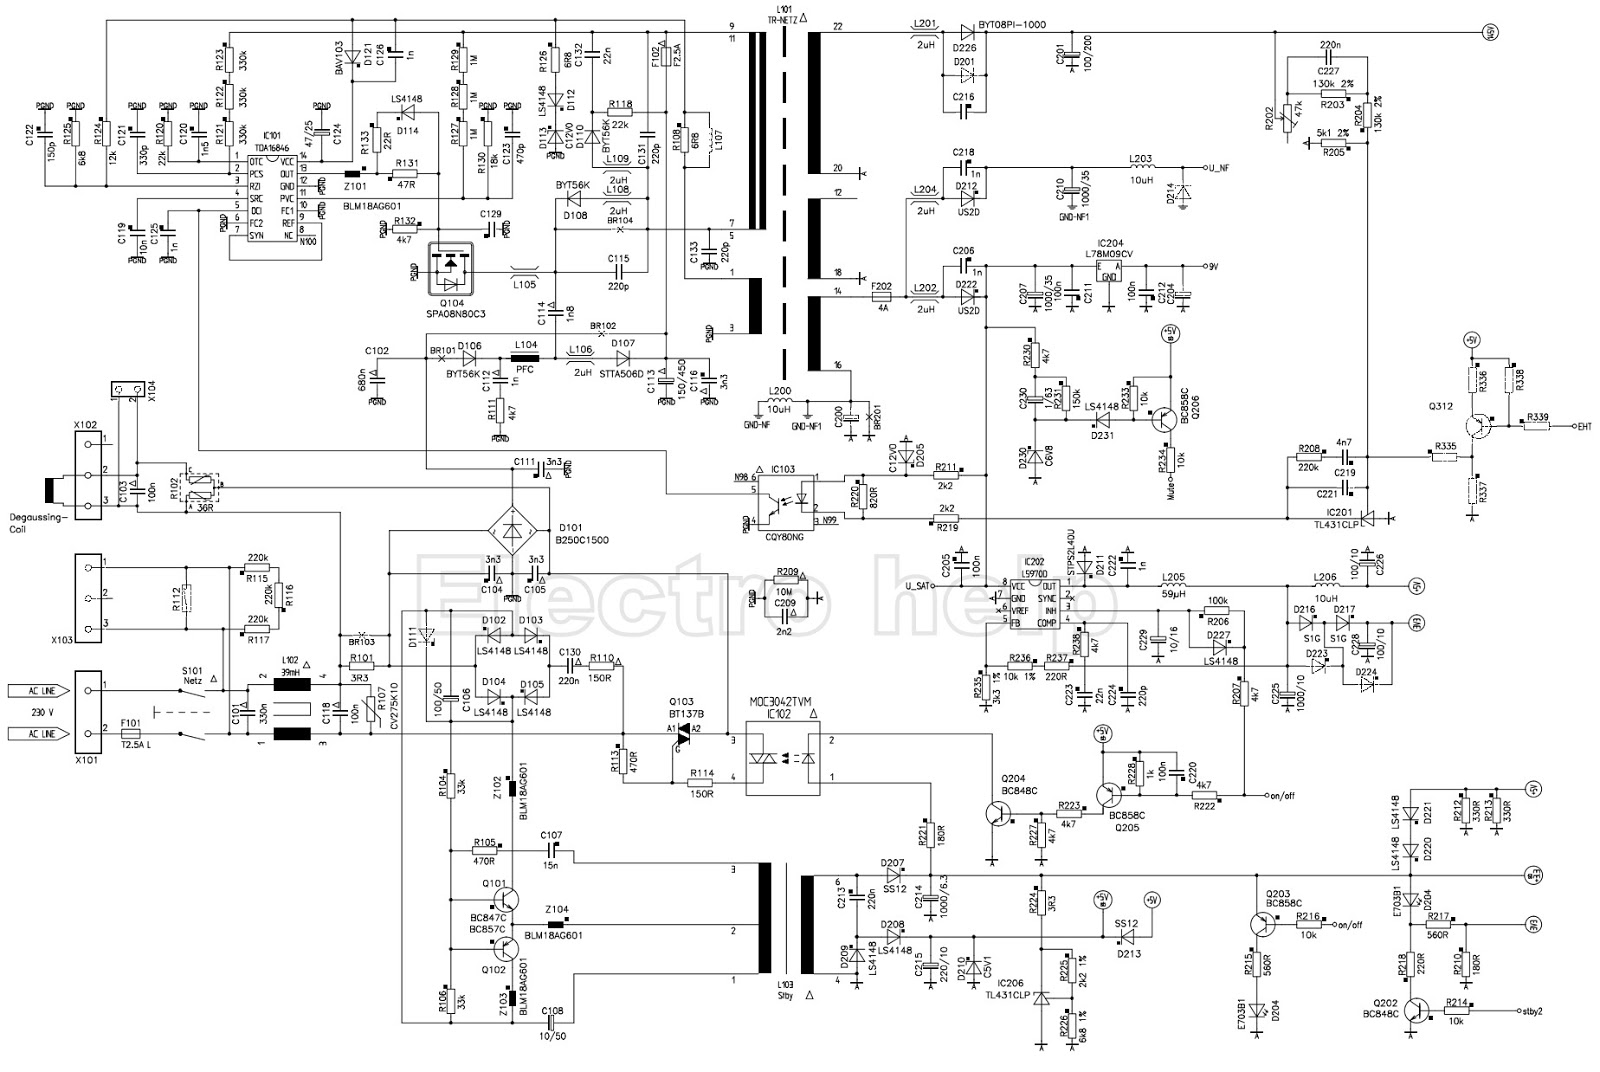 smps schematic click on the schematics to zoom in